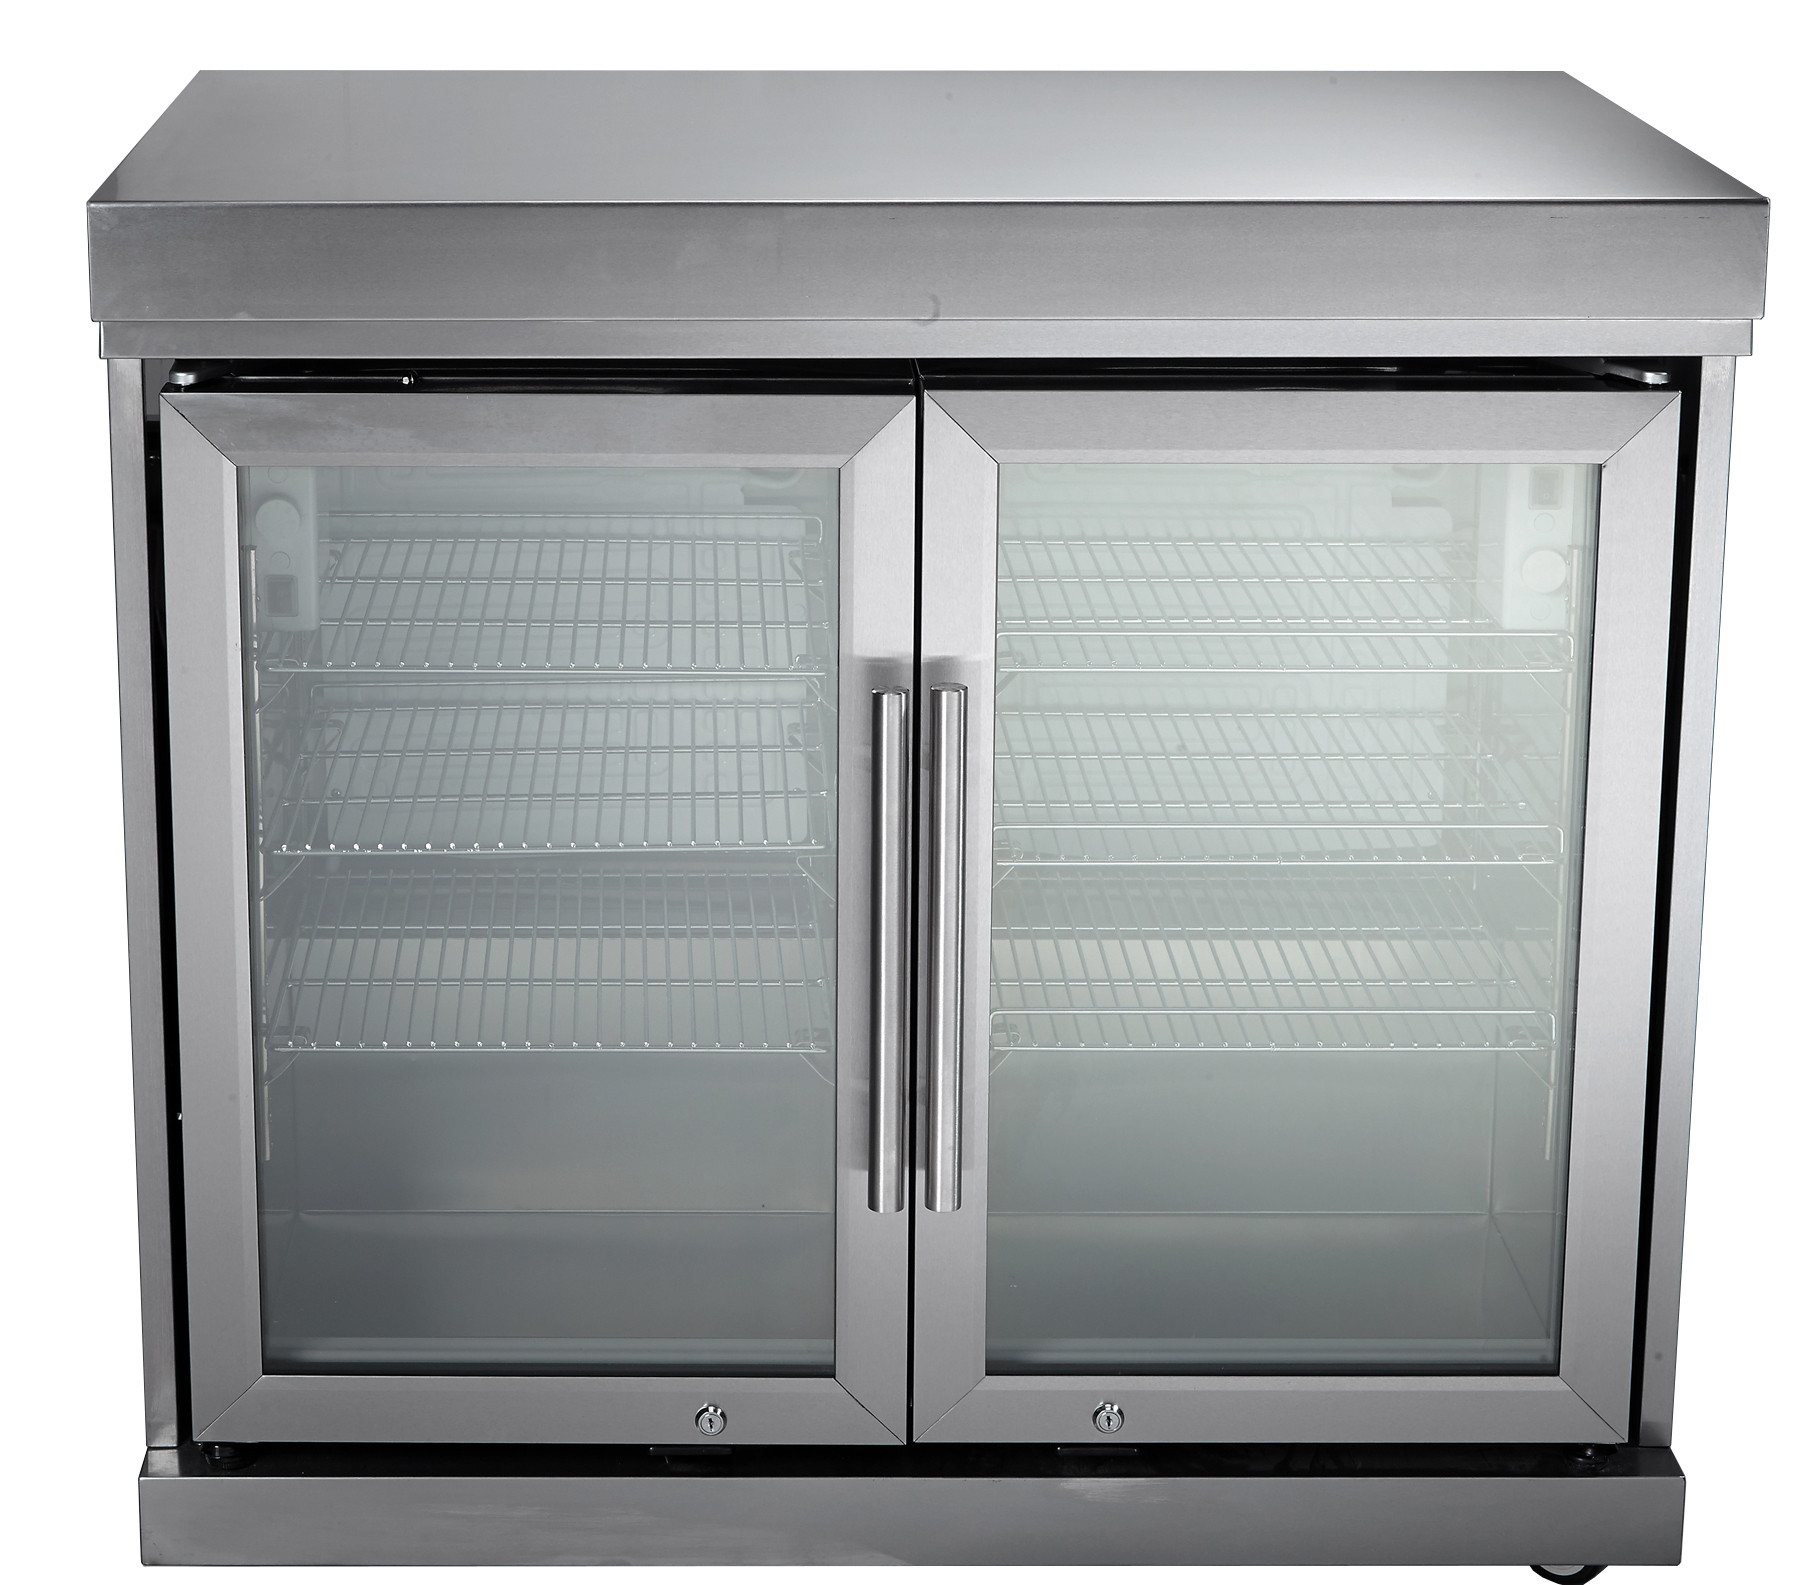 ChefMaster CG-RX Twin Fridge Module